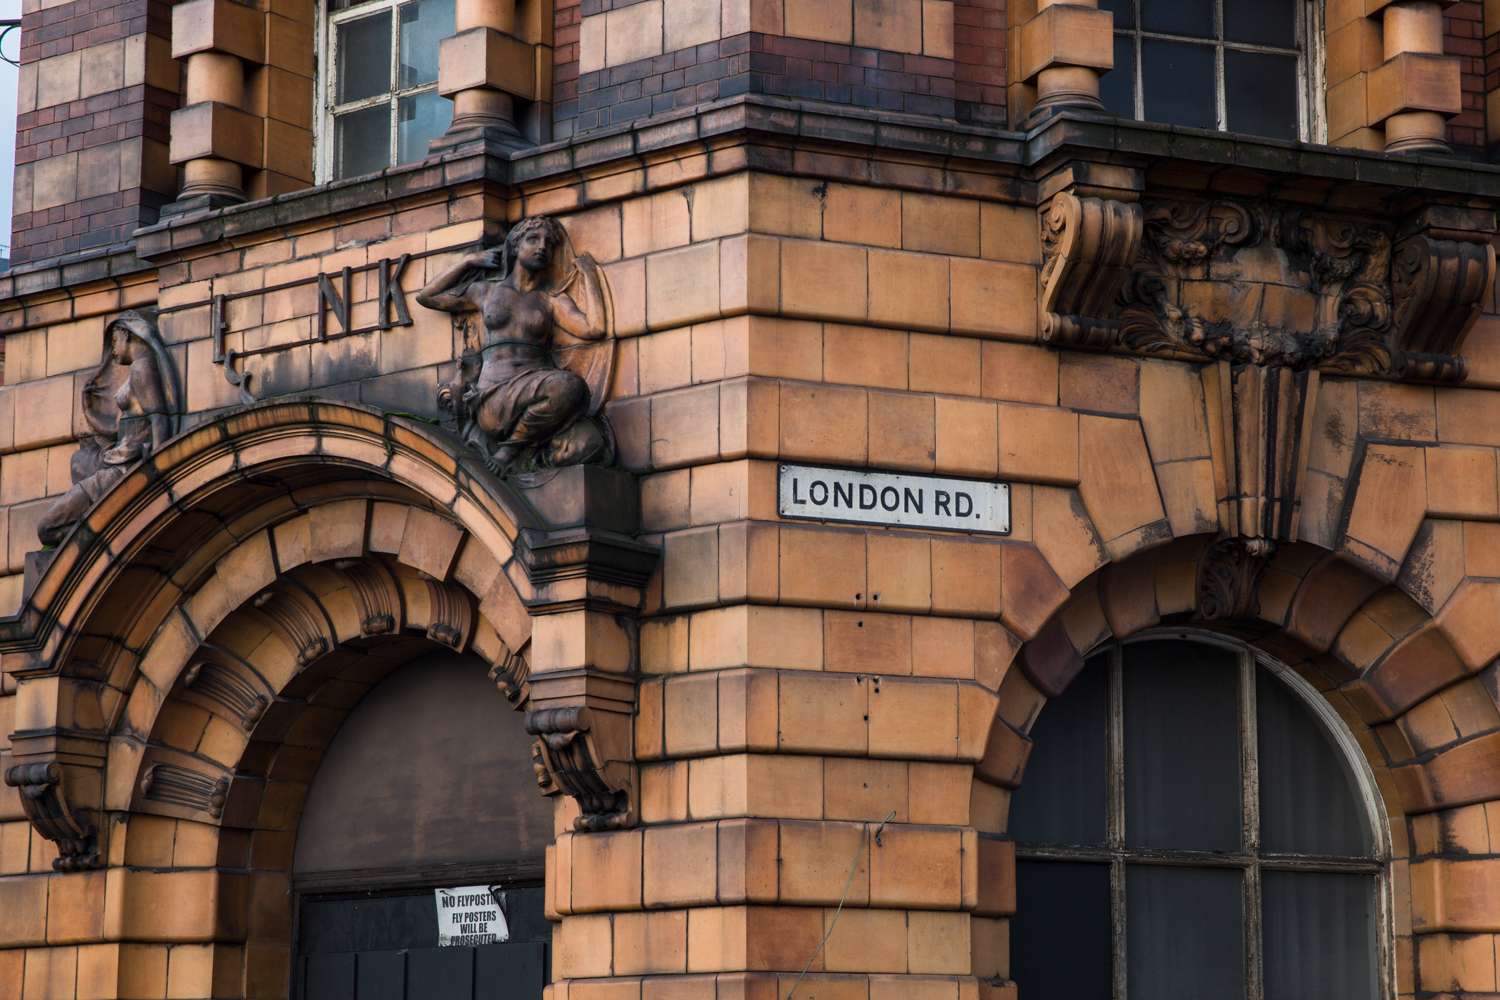 London Road Fire Station -